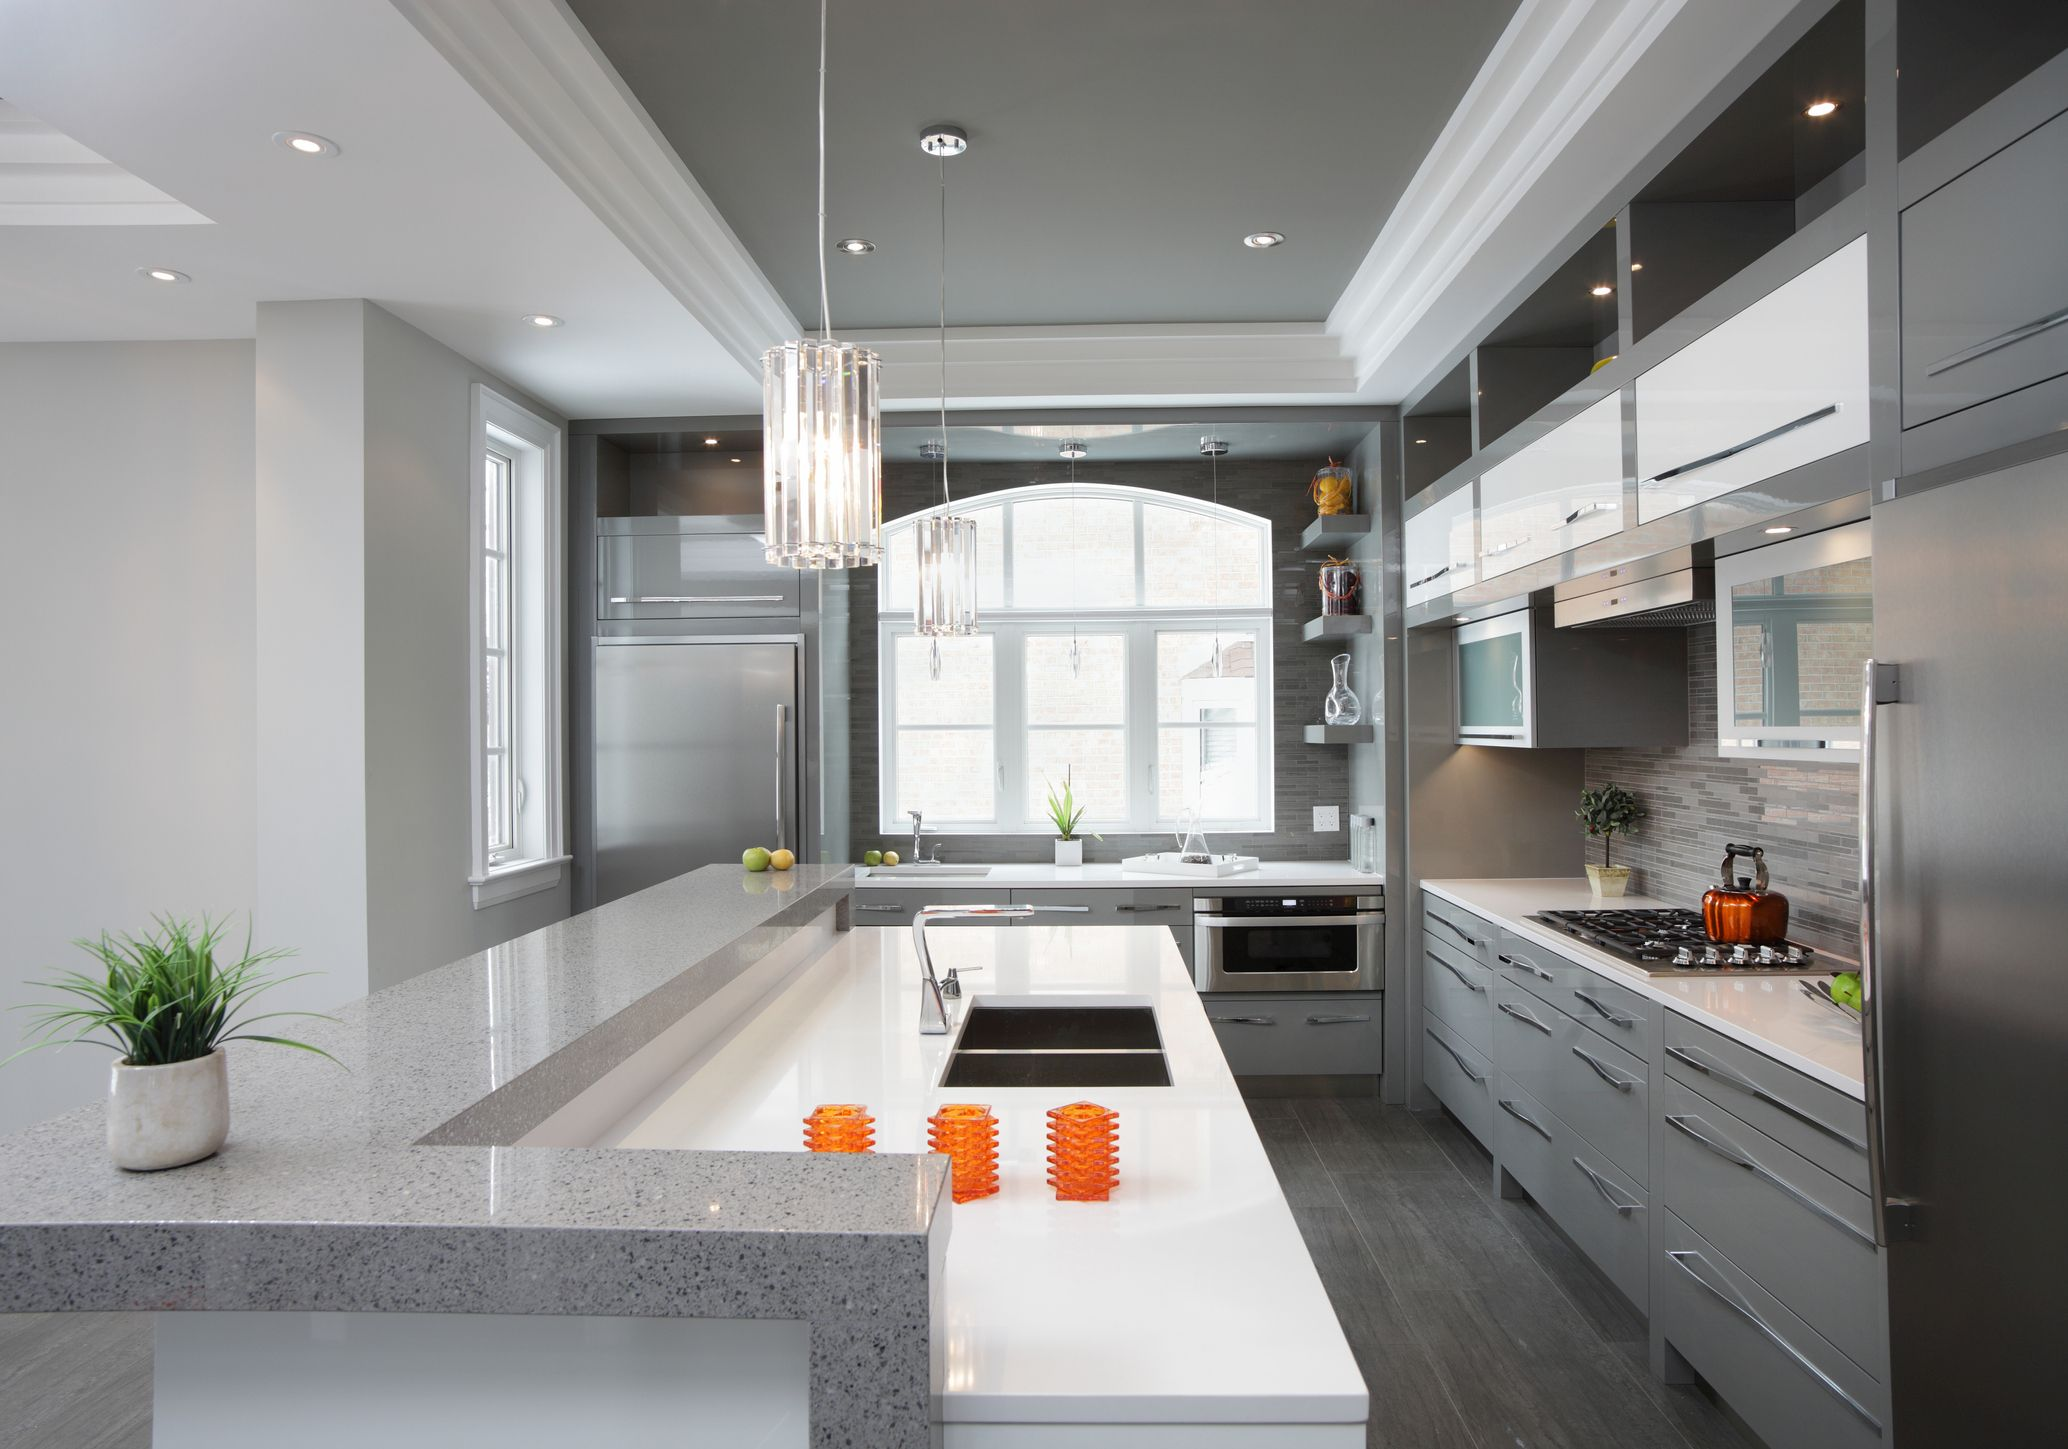 Shades of gray in the cabinets, backsplash, countertops, ceiling, and floors.